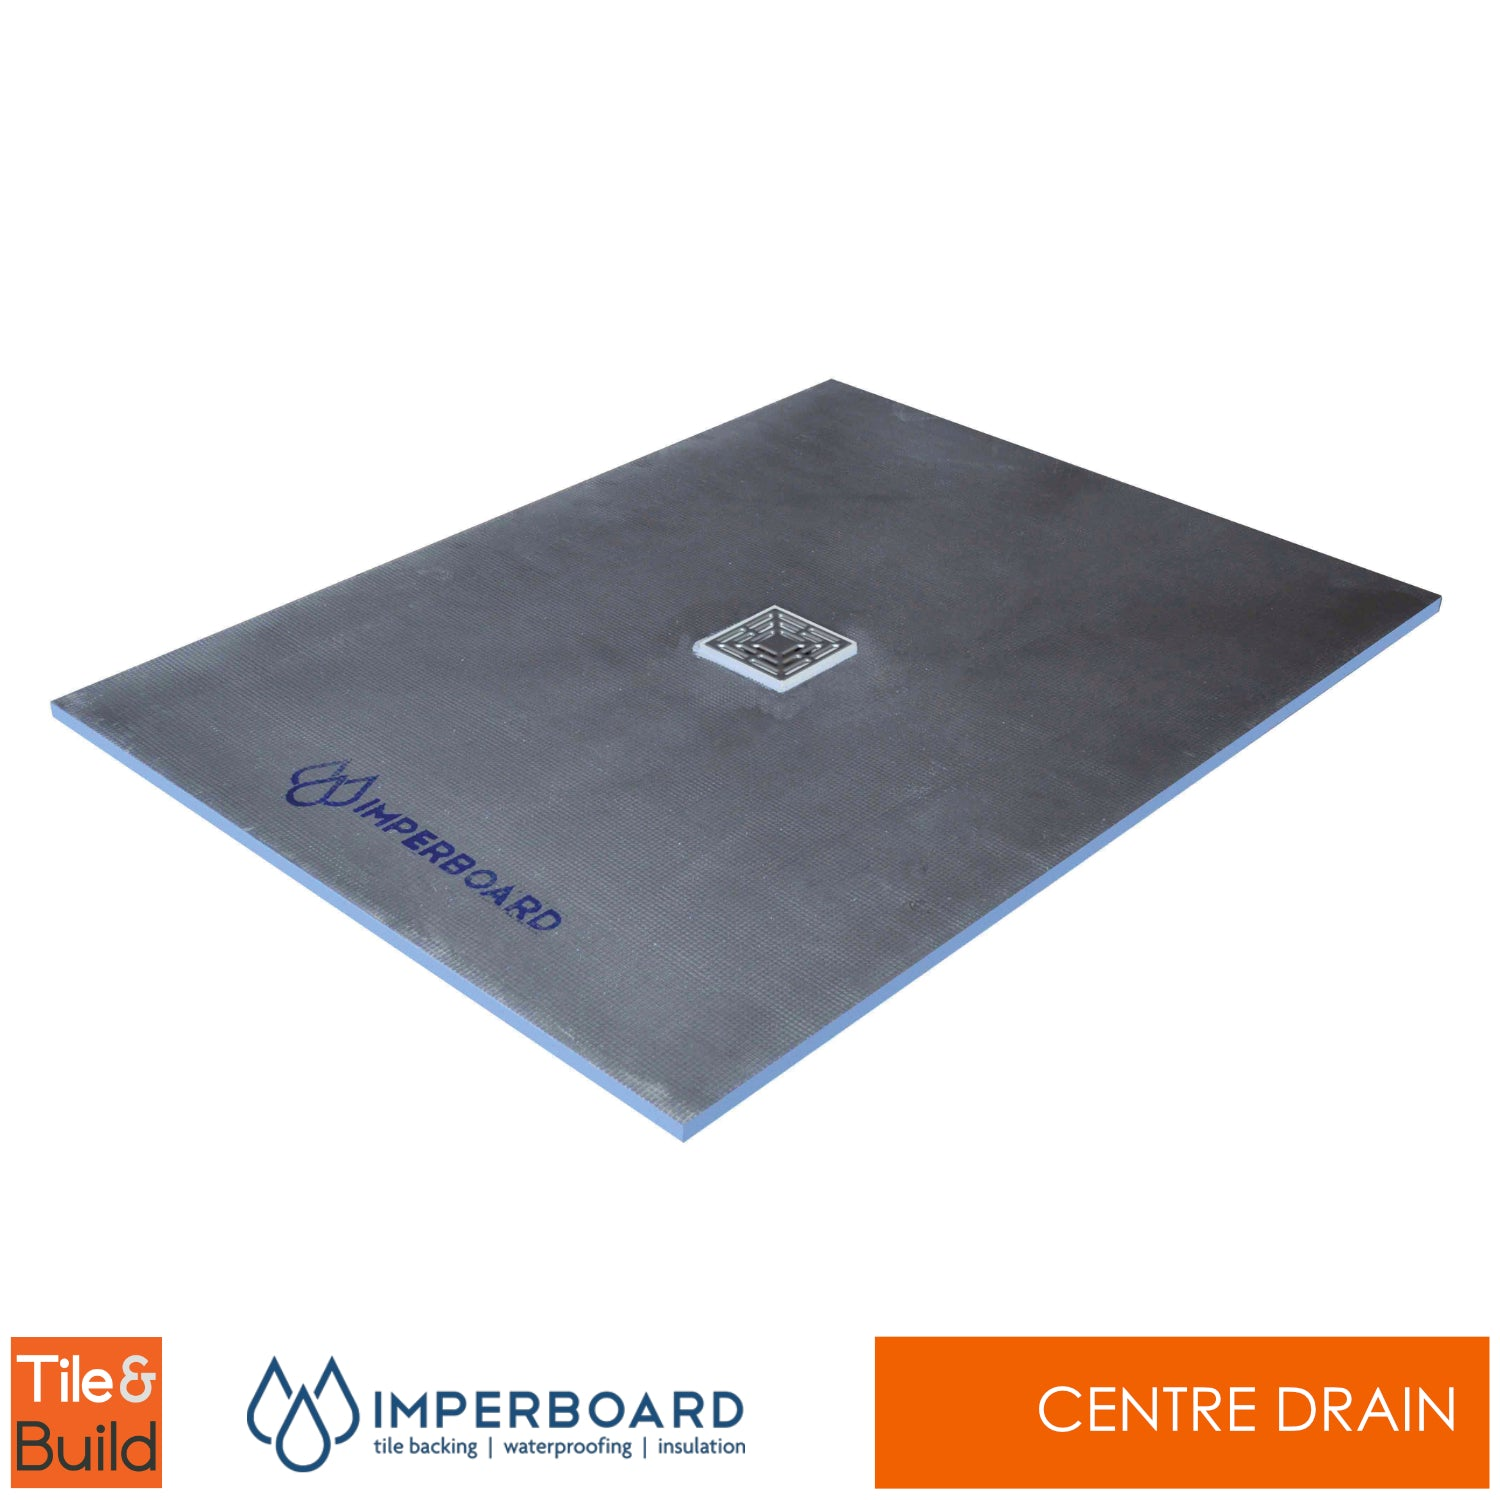 1200 x 1000 x 20mm Rectangular Centre Drain wetroom shower Tray - Imperboard